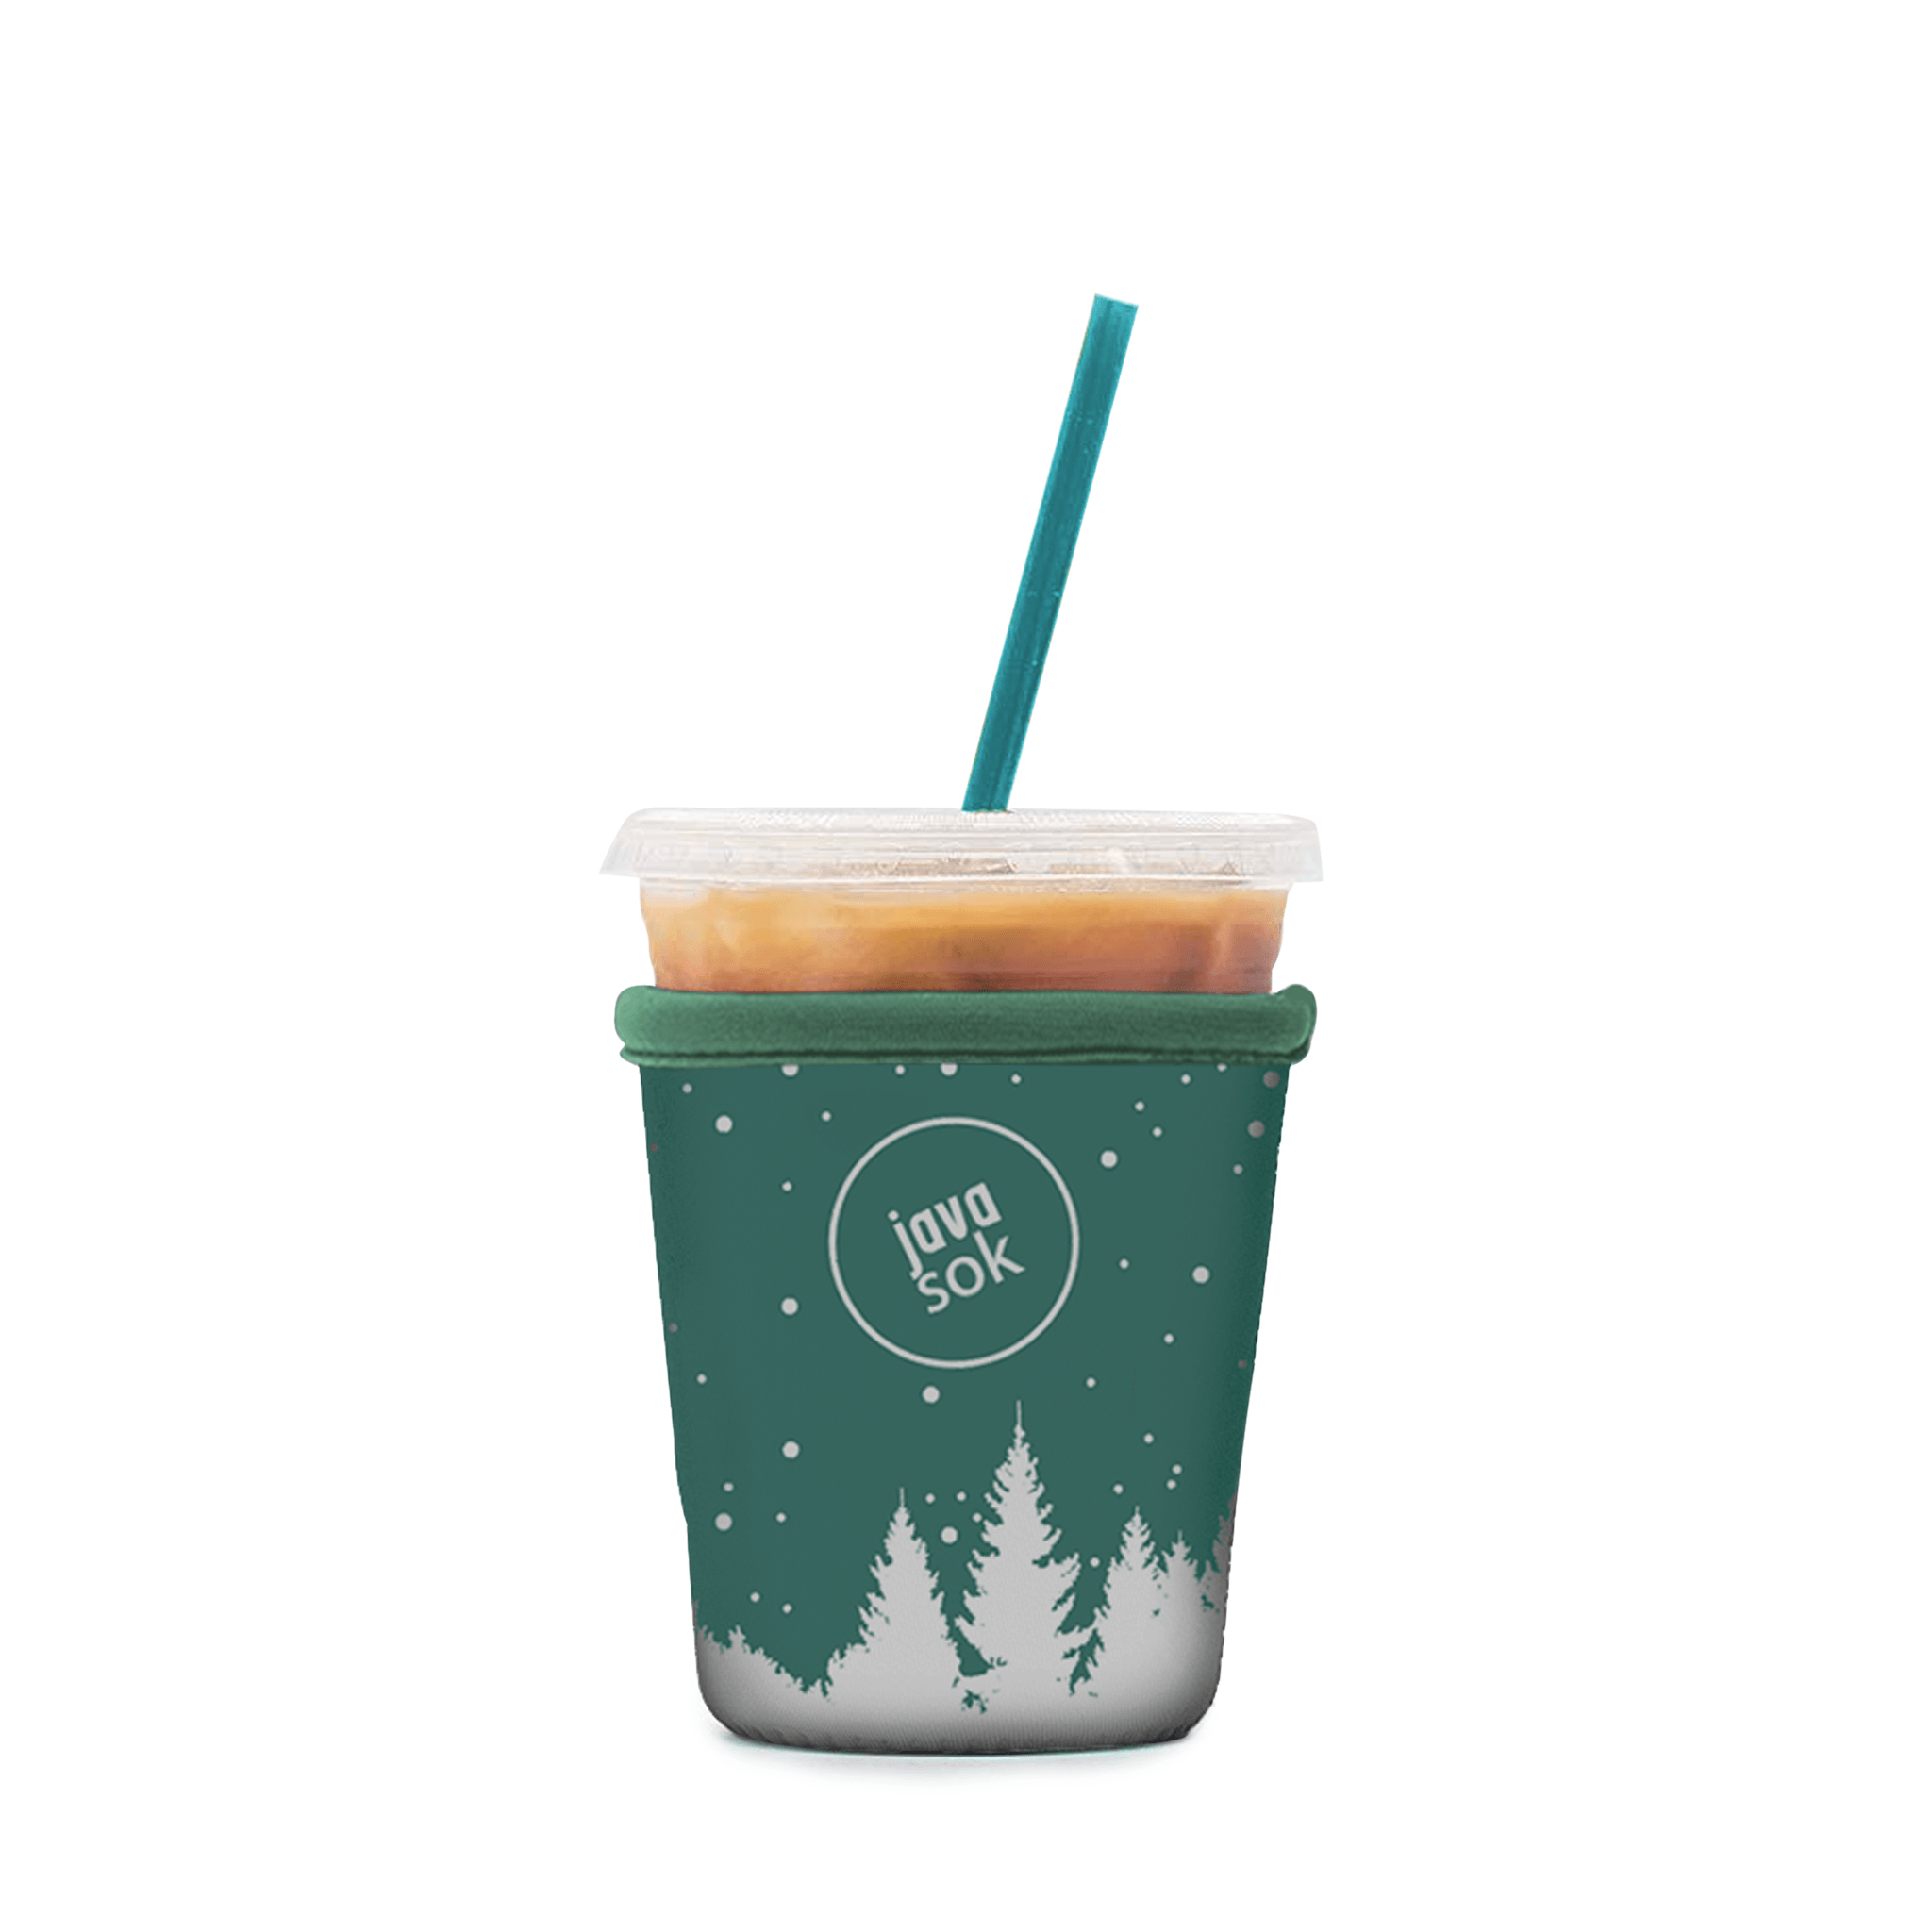 The Original Reusable Iced Coffee Sleeve